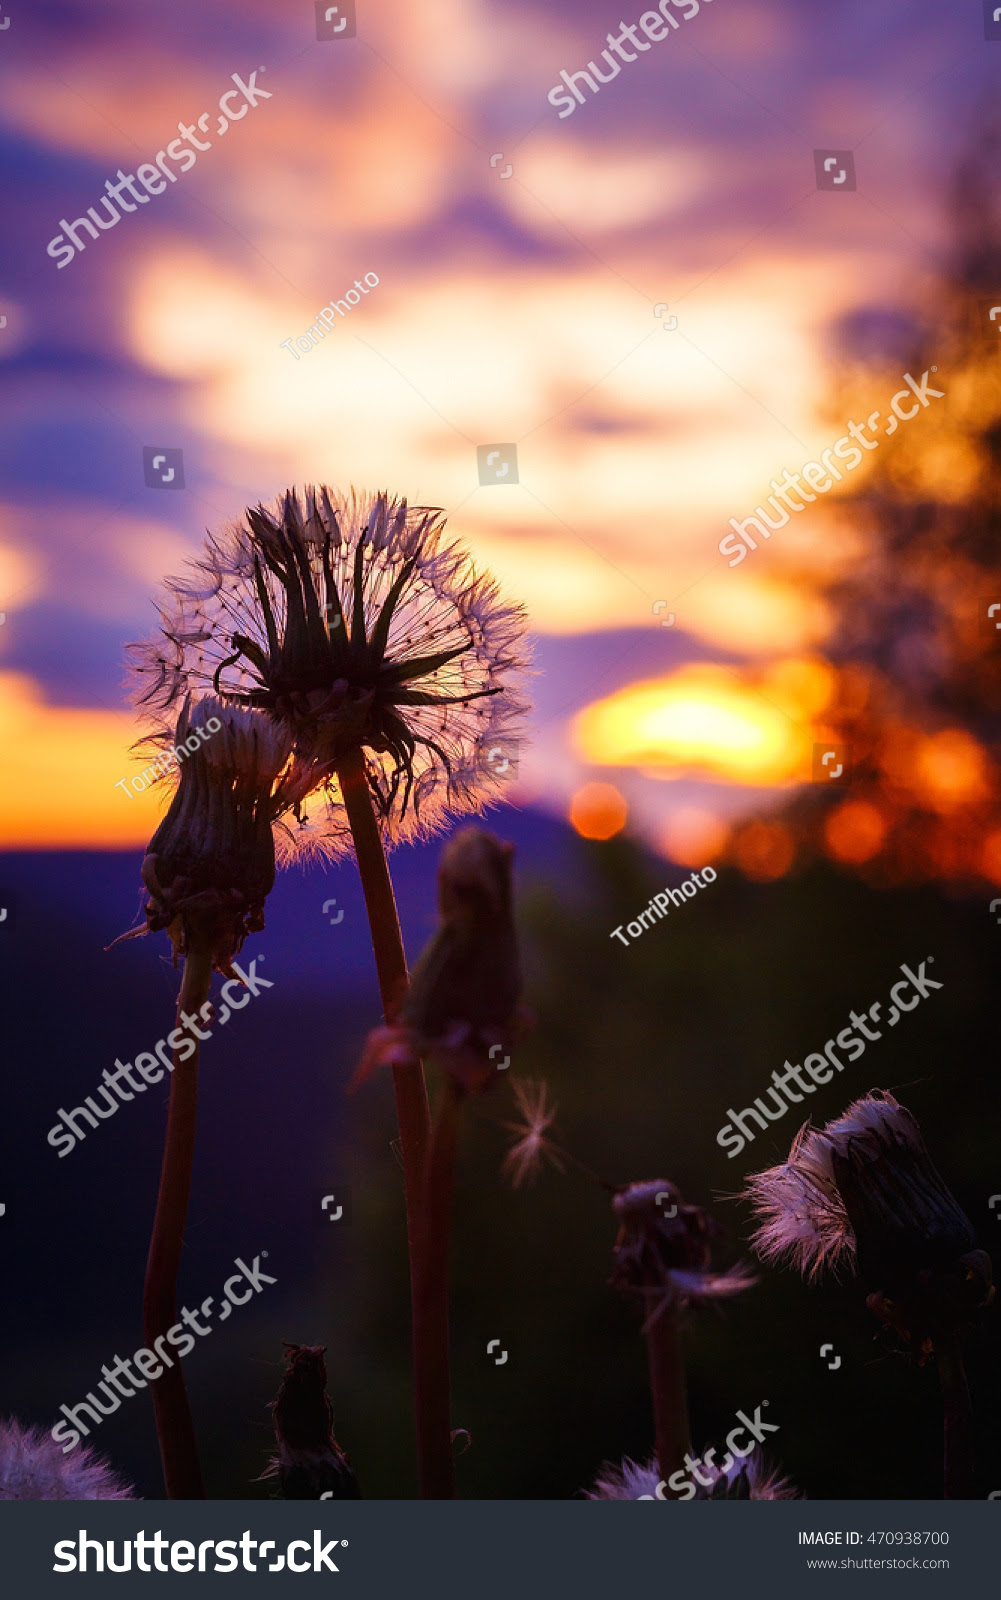 abstract, aged, background, ball, bloom, blossom, blowball, close, closeup, cloud, dandelion, dawn, dramatic, dusk, evening, feathery, flare, flora, floral, flowers, fluff, fluffy, focus, head, light, meadow, natural, nature, outdoor, park, pink, plant, purple, season, seed, seedling, shallow, silhouette, sky, spring, summer, sun, sundown, sunlight, sunny, sunrise, sunset, time, wildflower, yellow